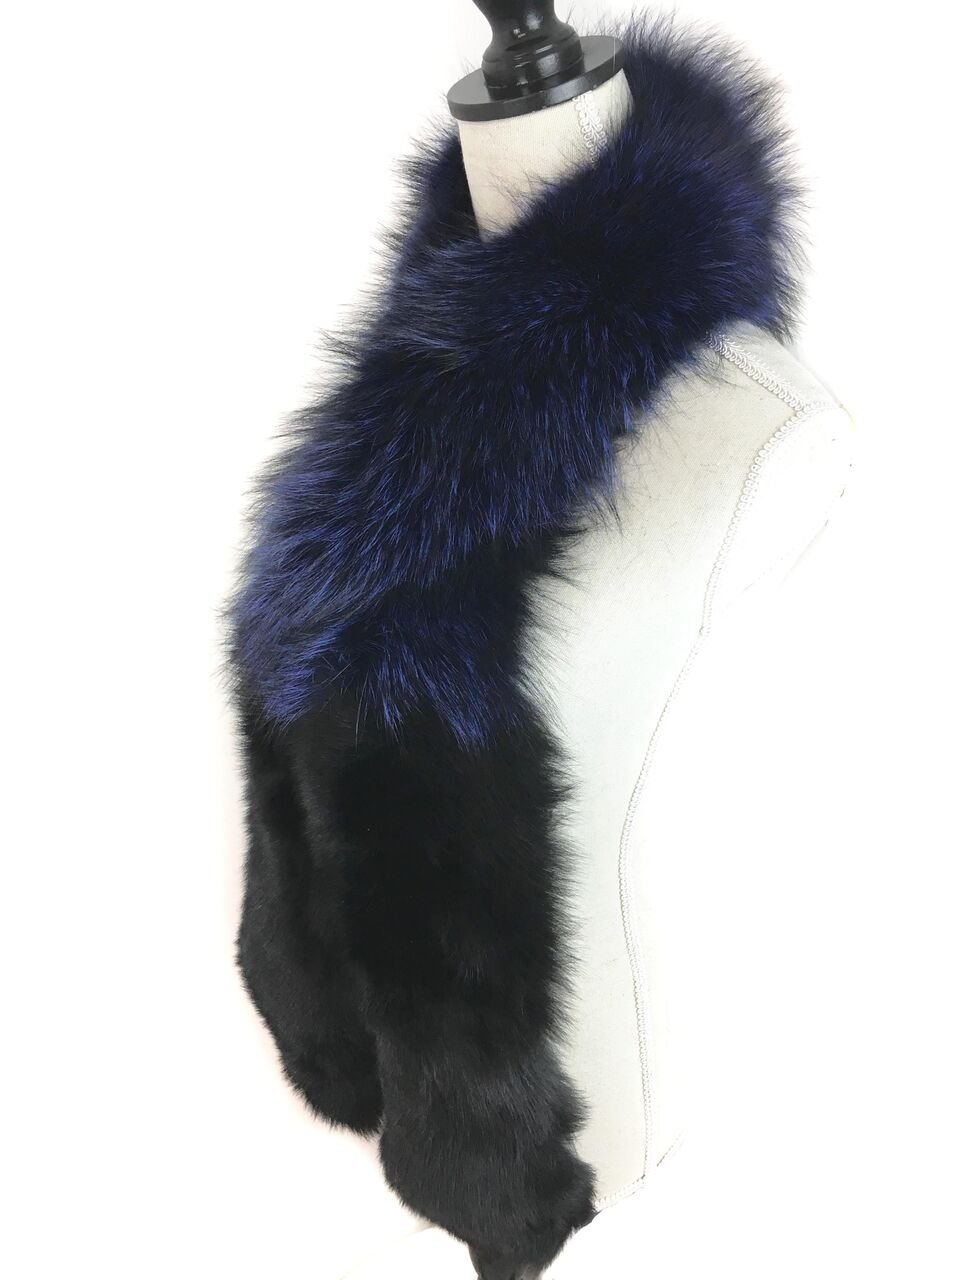 Surell Dyed Fox Fur Scarf - Womens Luxury Neck Wrap - Perfect Winter Fashion Gift (Blue) by surell (Image #3)